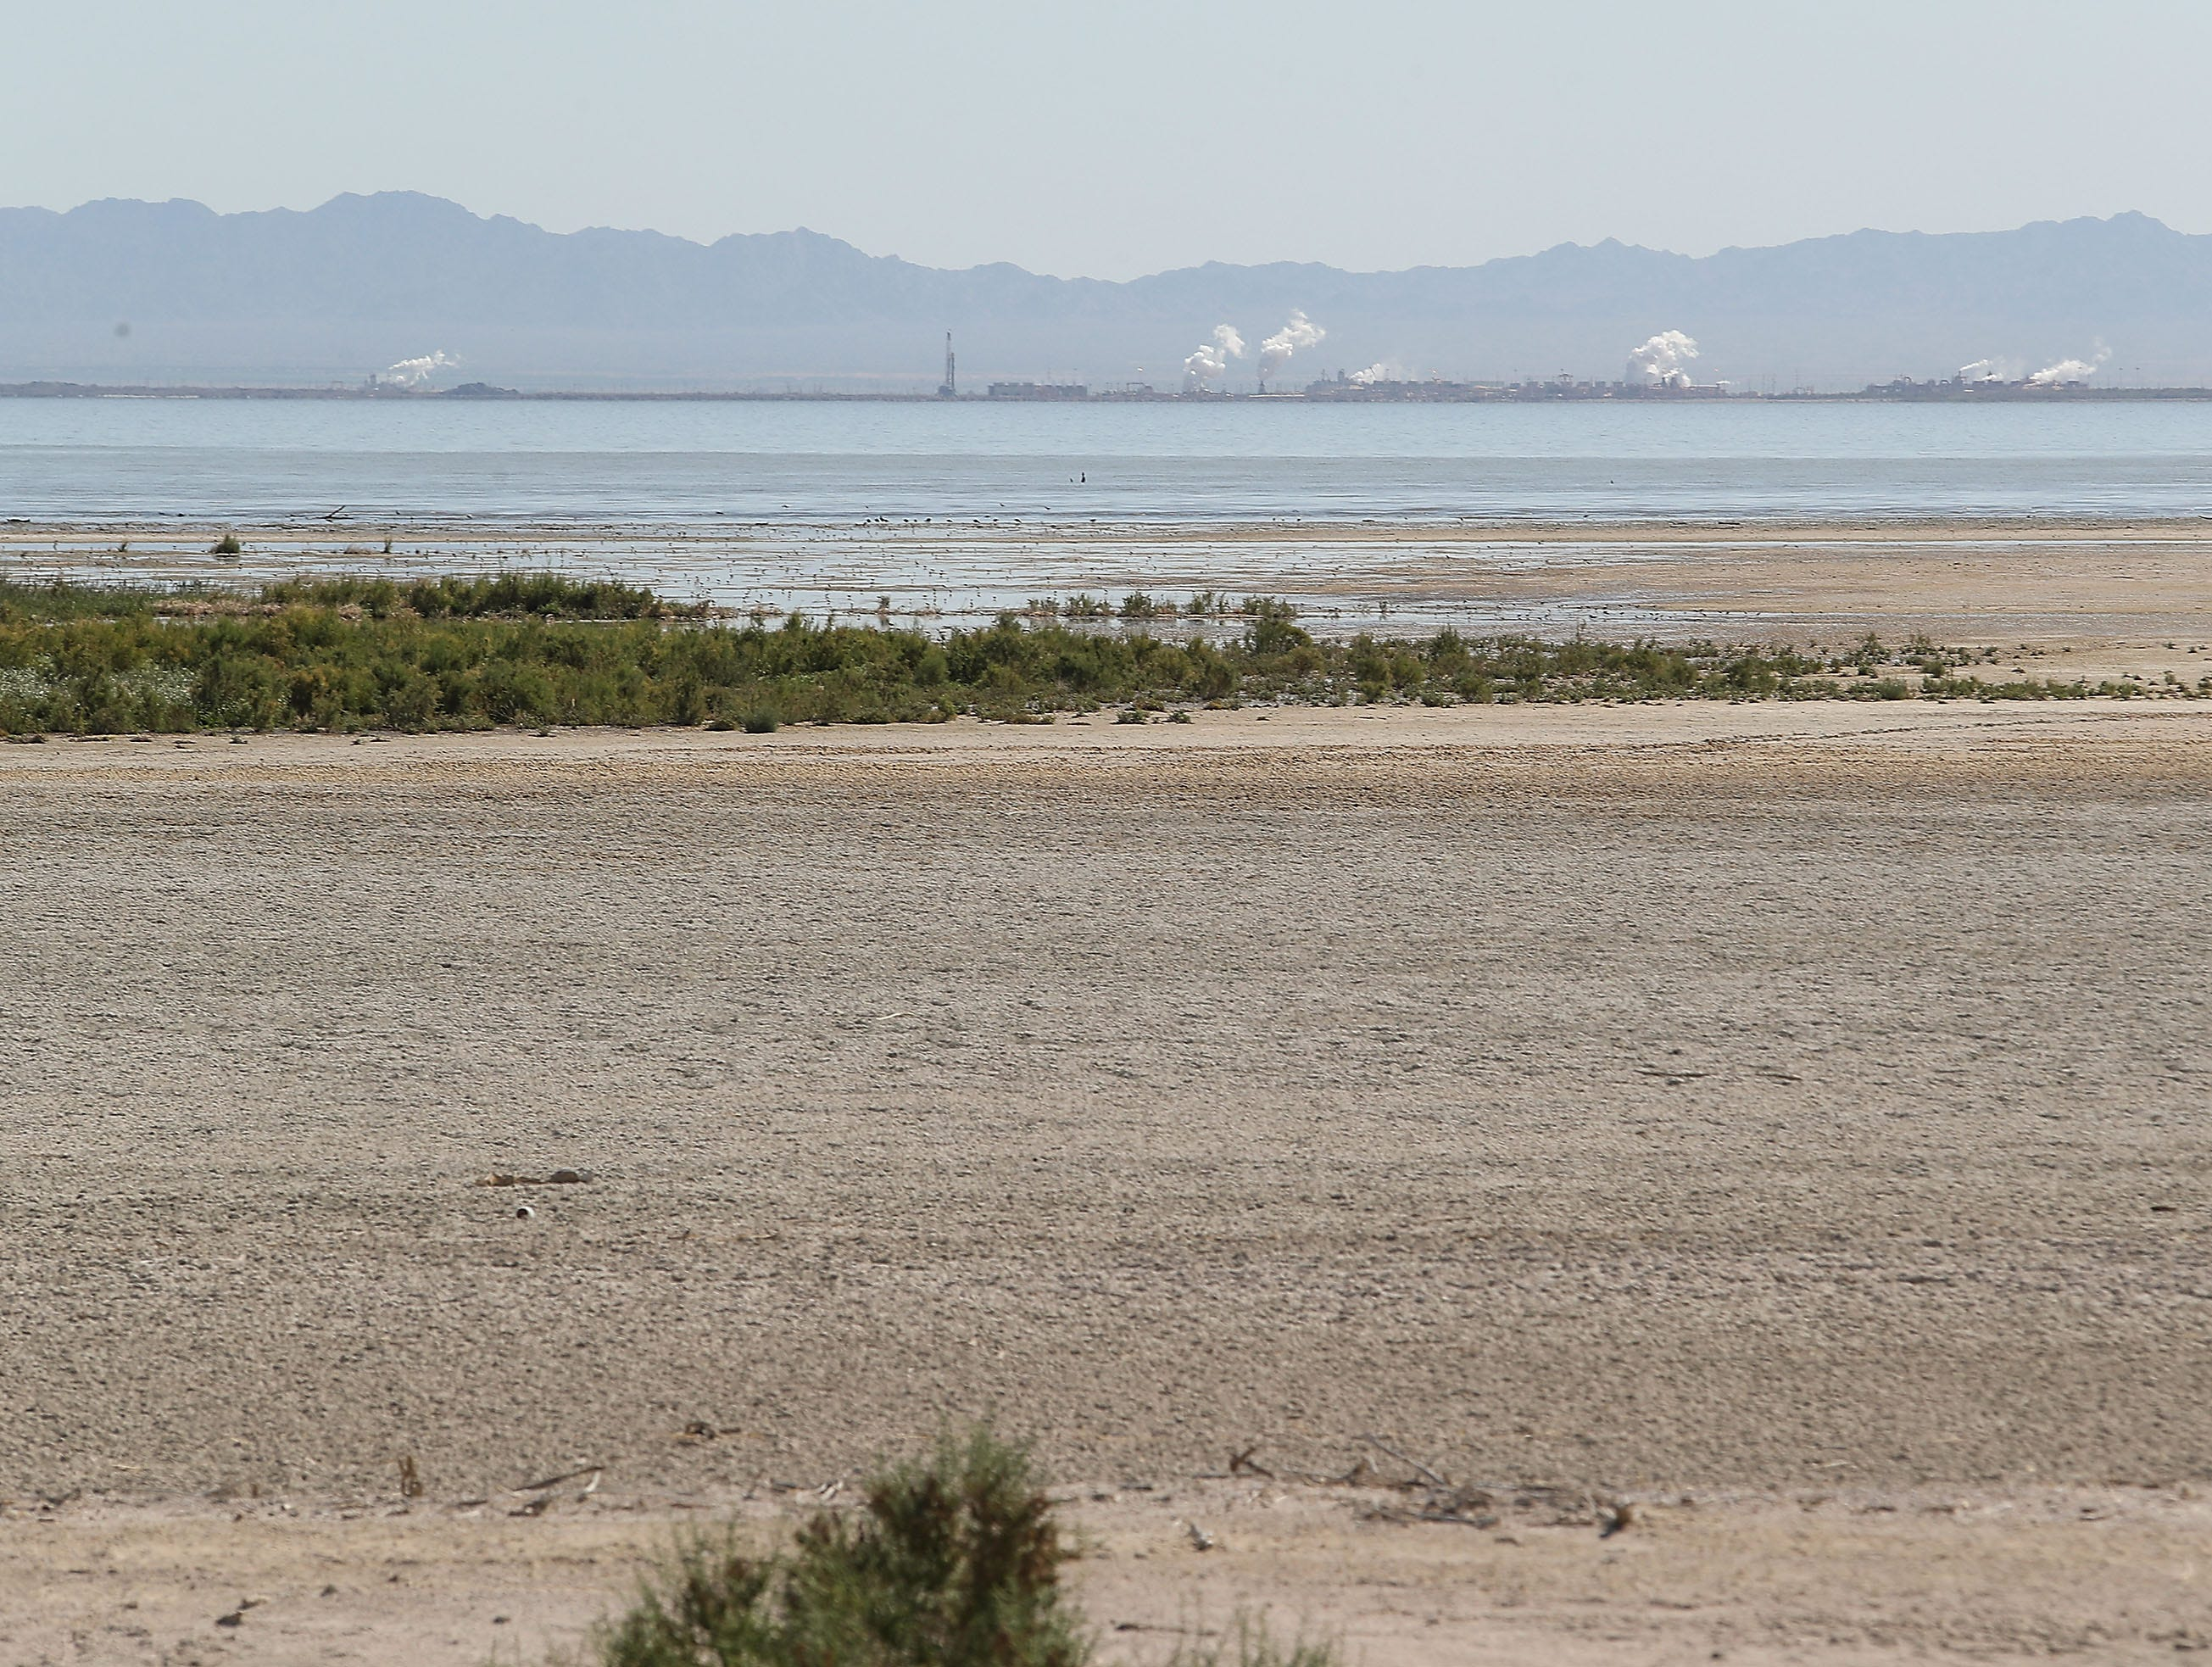 Where there used to be water there is now exposed playa as the Salton Sea recedes away from the Elmore Desert Ranch near Brawley, April 11, 2019.